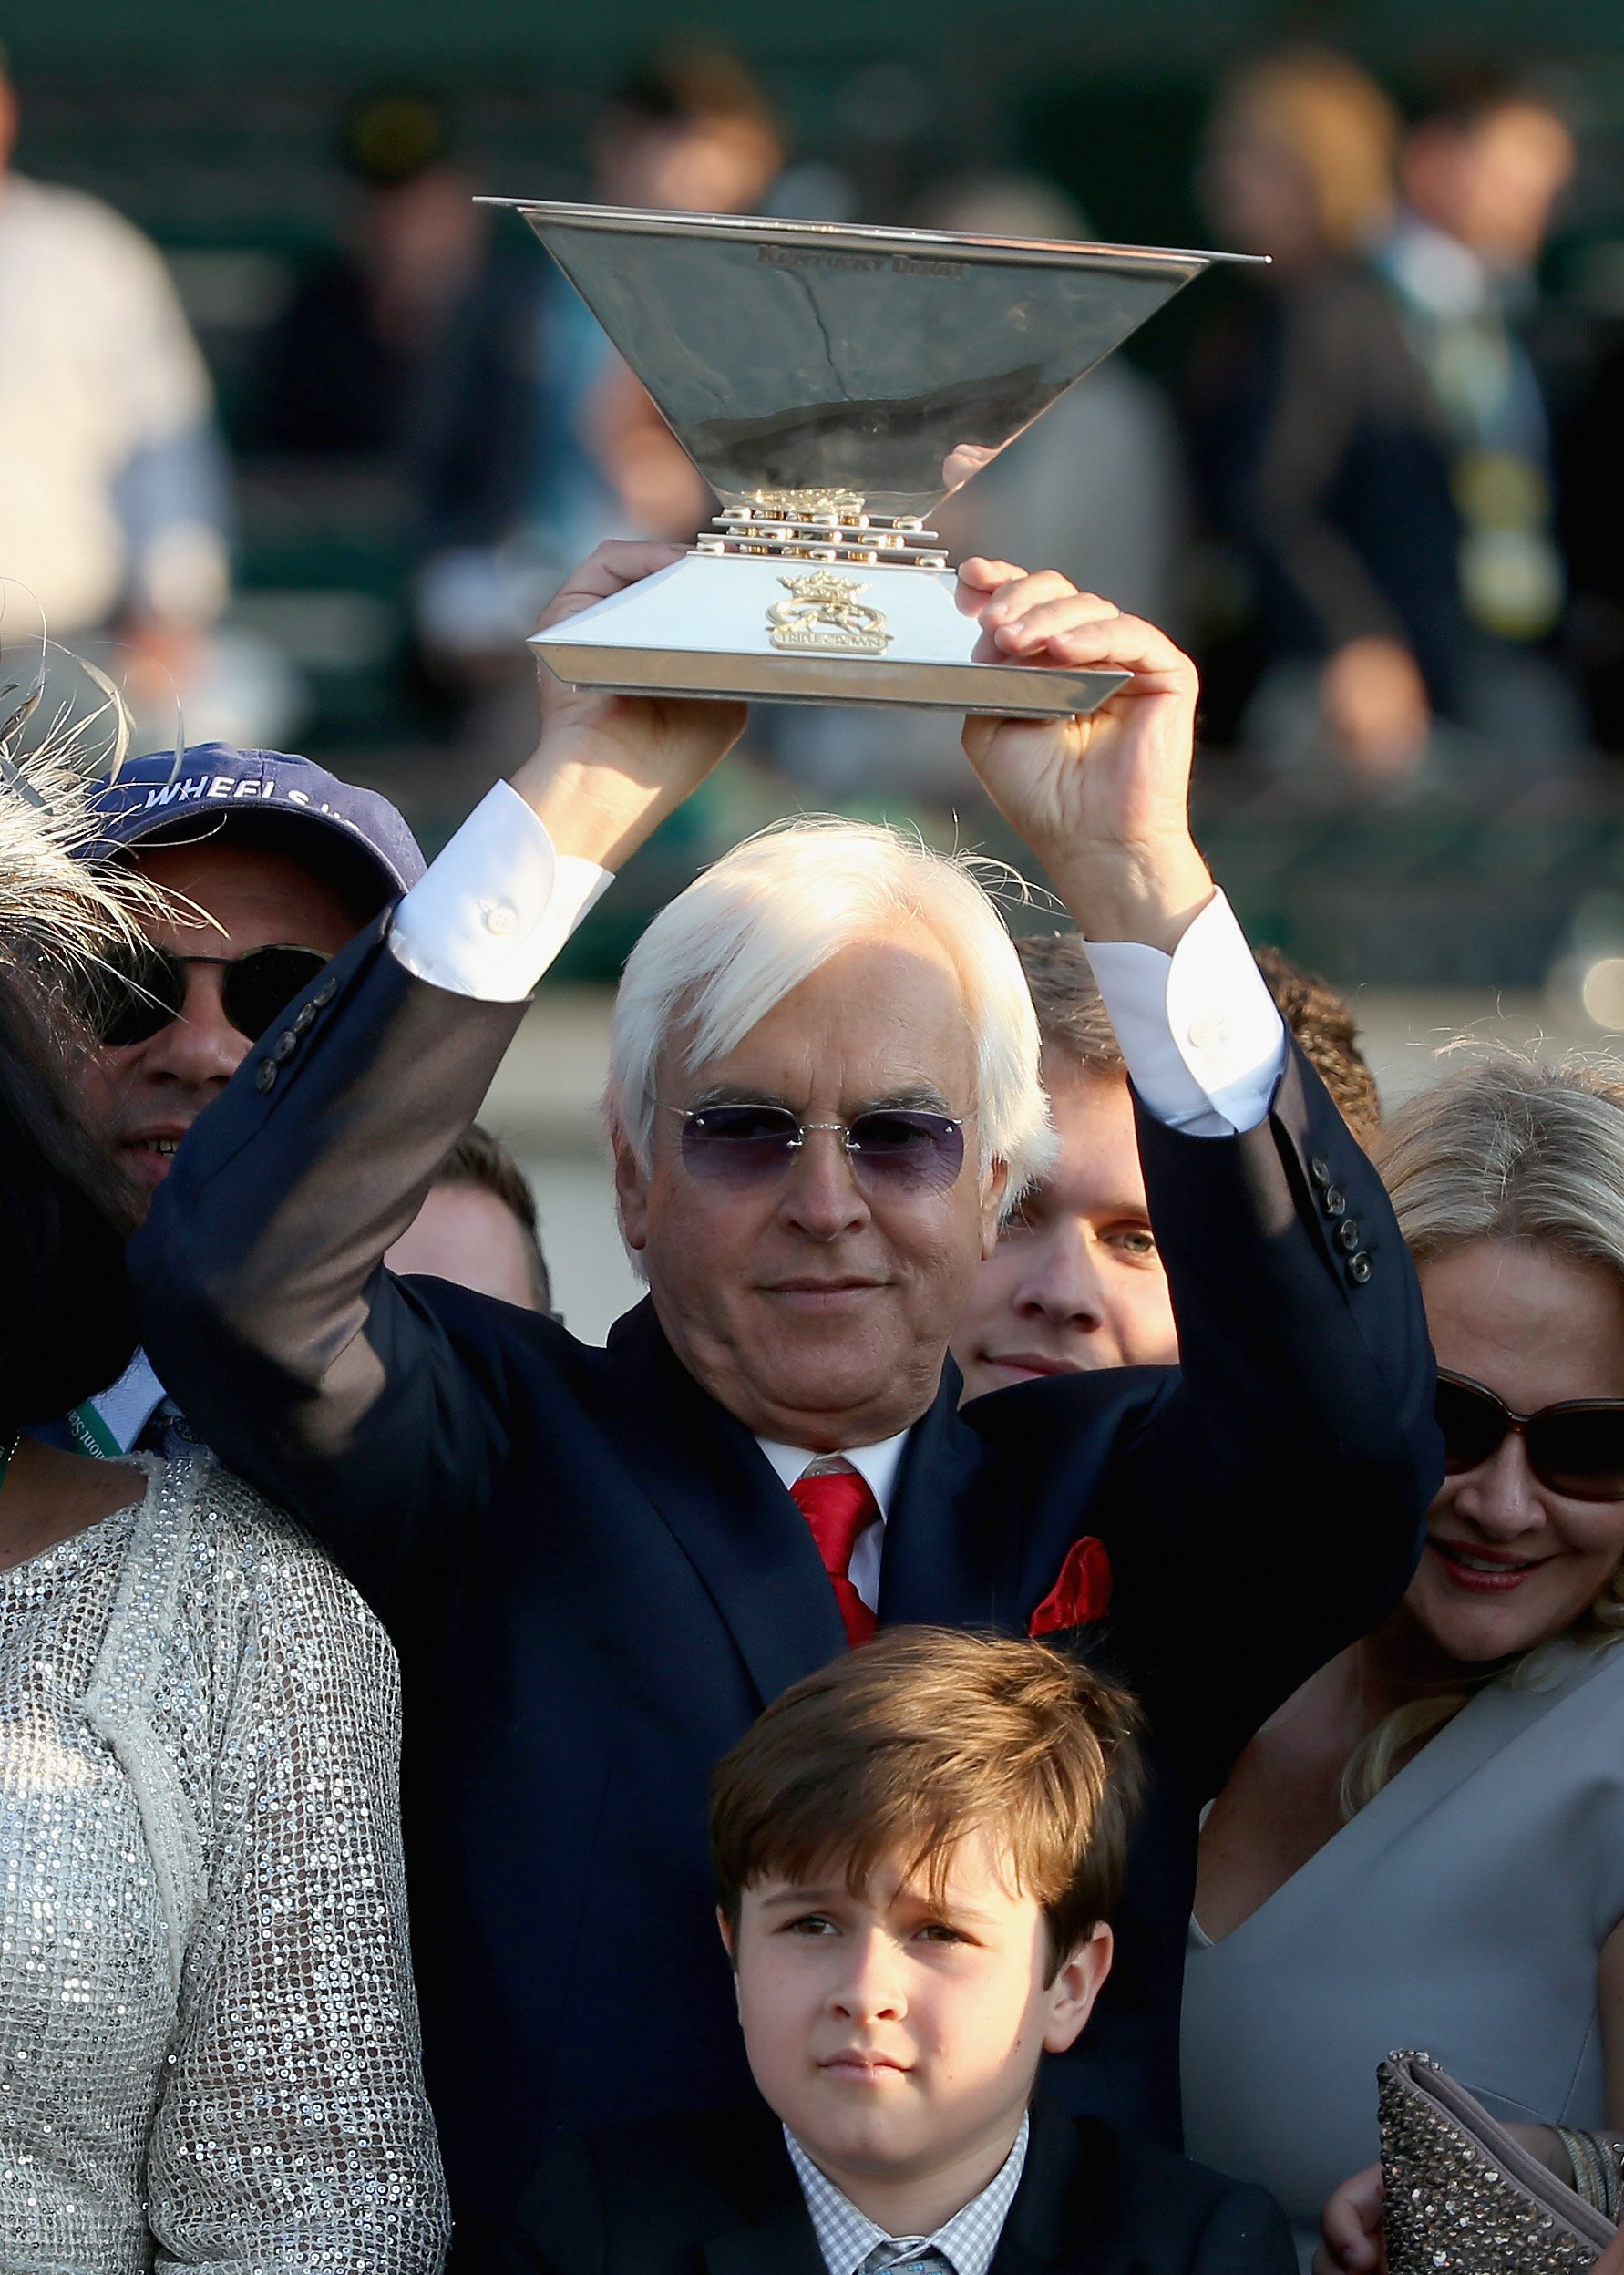 Trainer, Bob Baffert, of American Pharoah #5 celebrates with the Triple Crown Trophy after winning the 147th running of the Belmont Stakes at Belmont Park on June 6, 2015 in Elmont, N.Y.